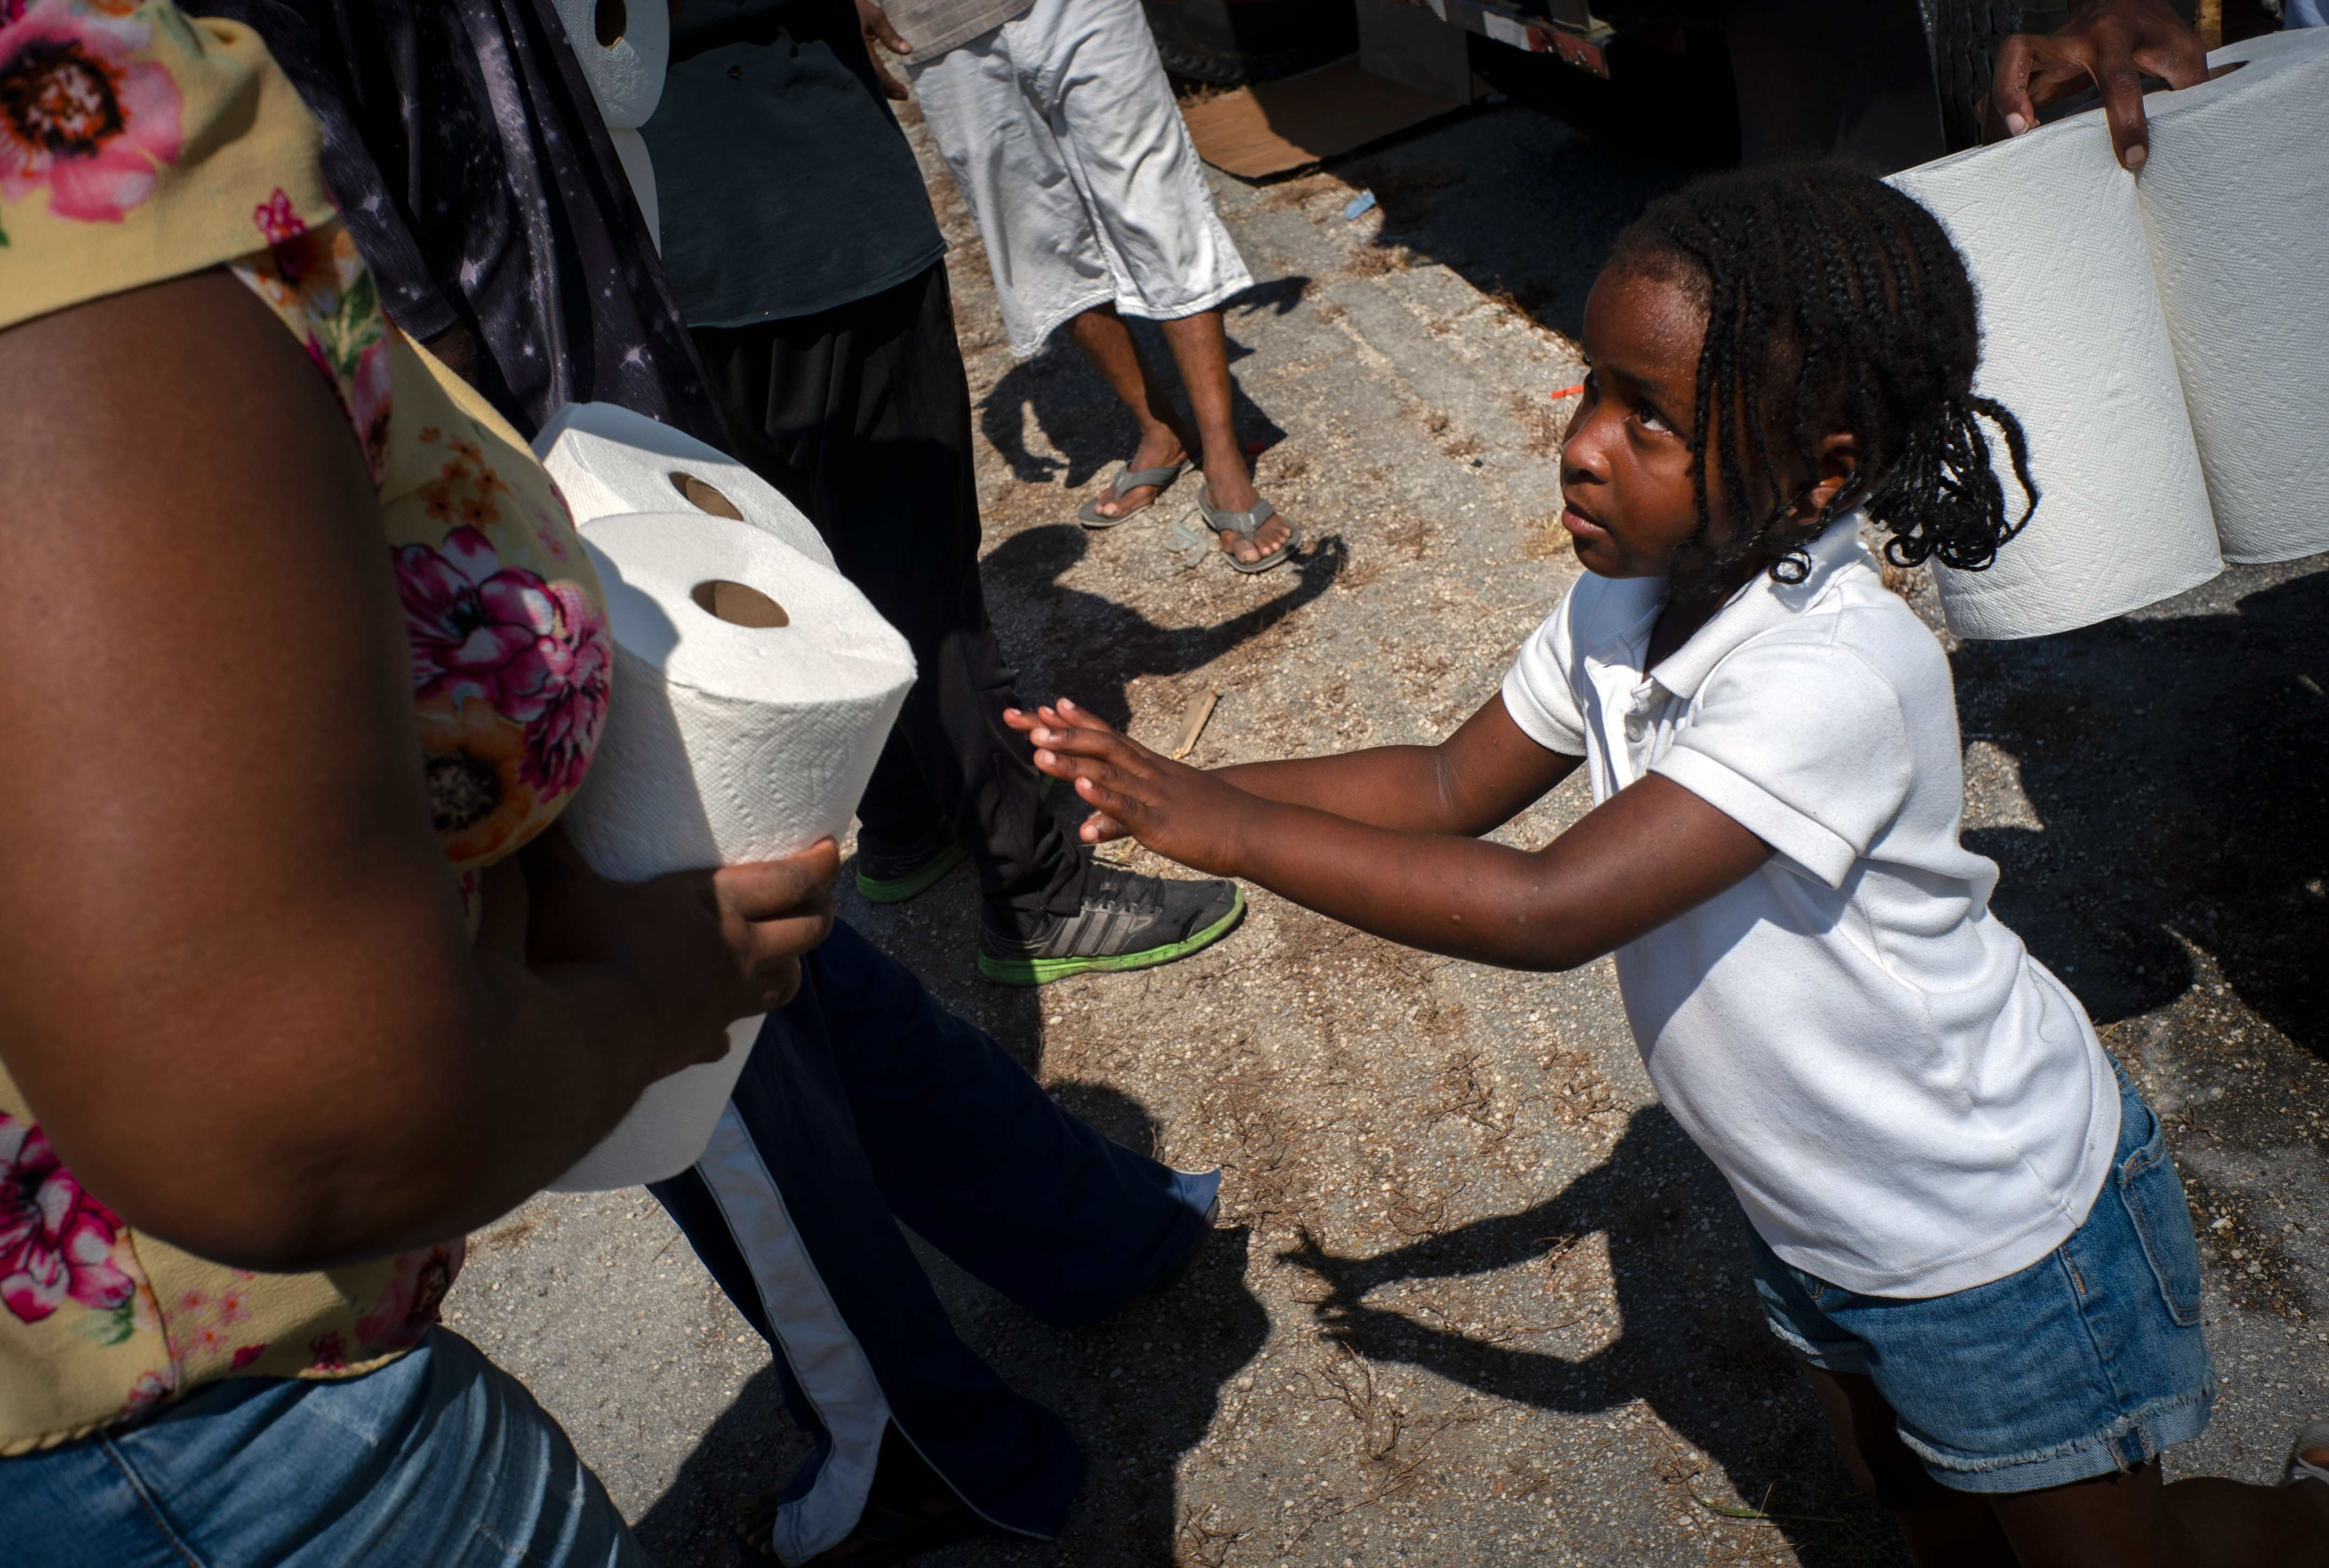 Five-year-old Cattleya Aranha helps to distribute paper rolls donated by private entities to victims of Hurricane Dorian, in Freeport, Bahamas.